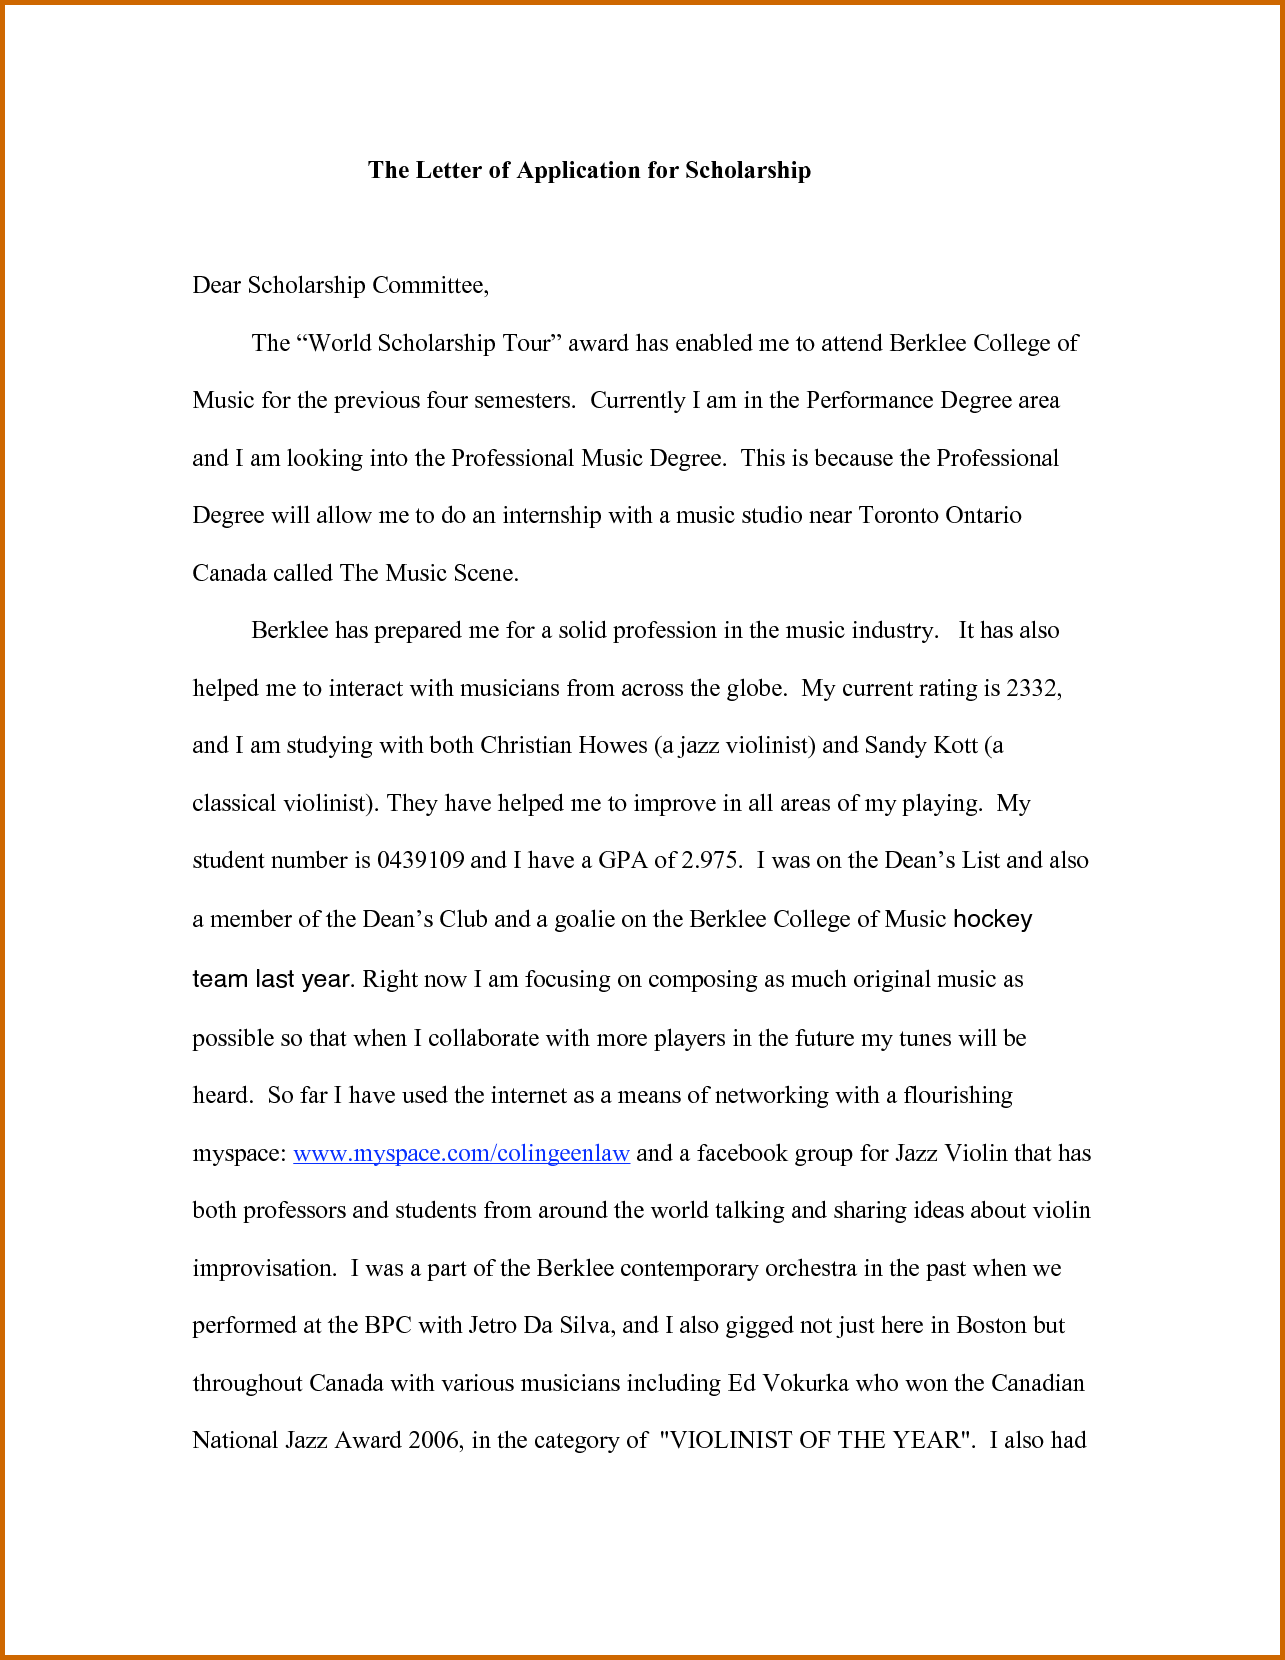 008 What To Write In Scholarship Essay Writer My How Personal Statement For Scholarships Application Good Shocking High School Students Study Abroad Examples 2018 Bachelors And Masters Full